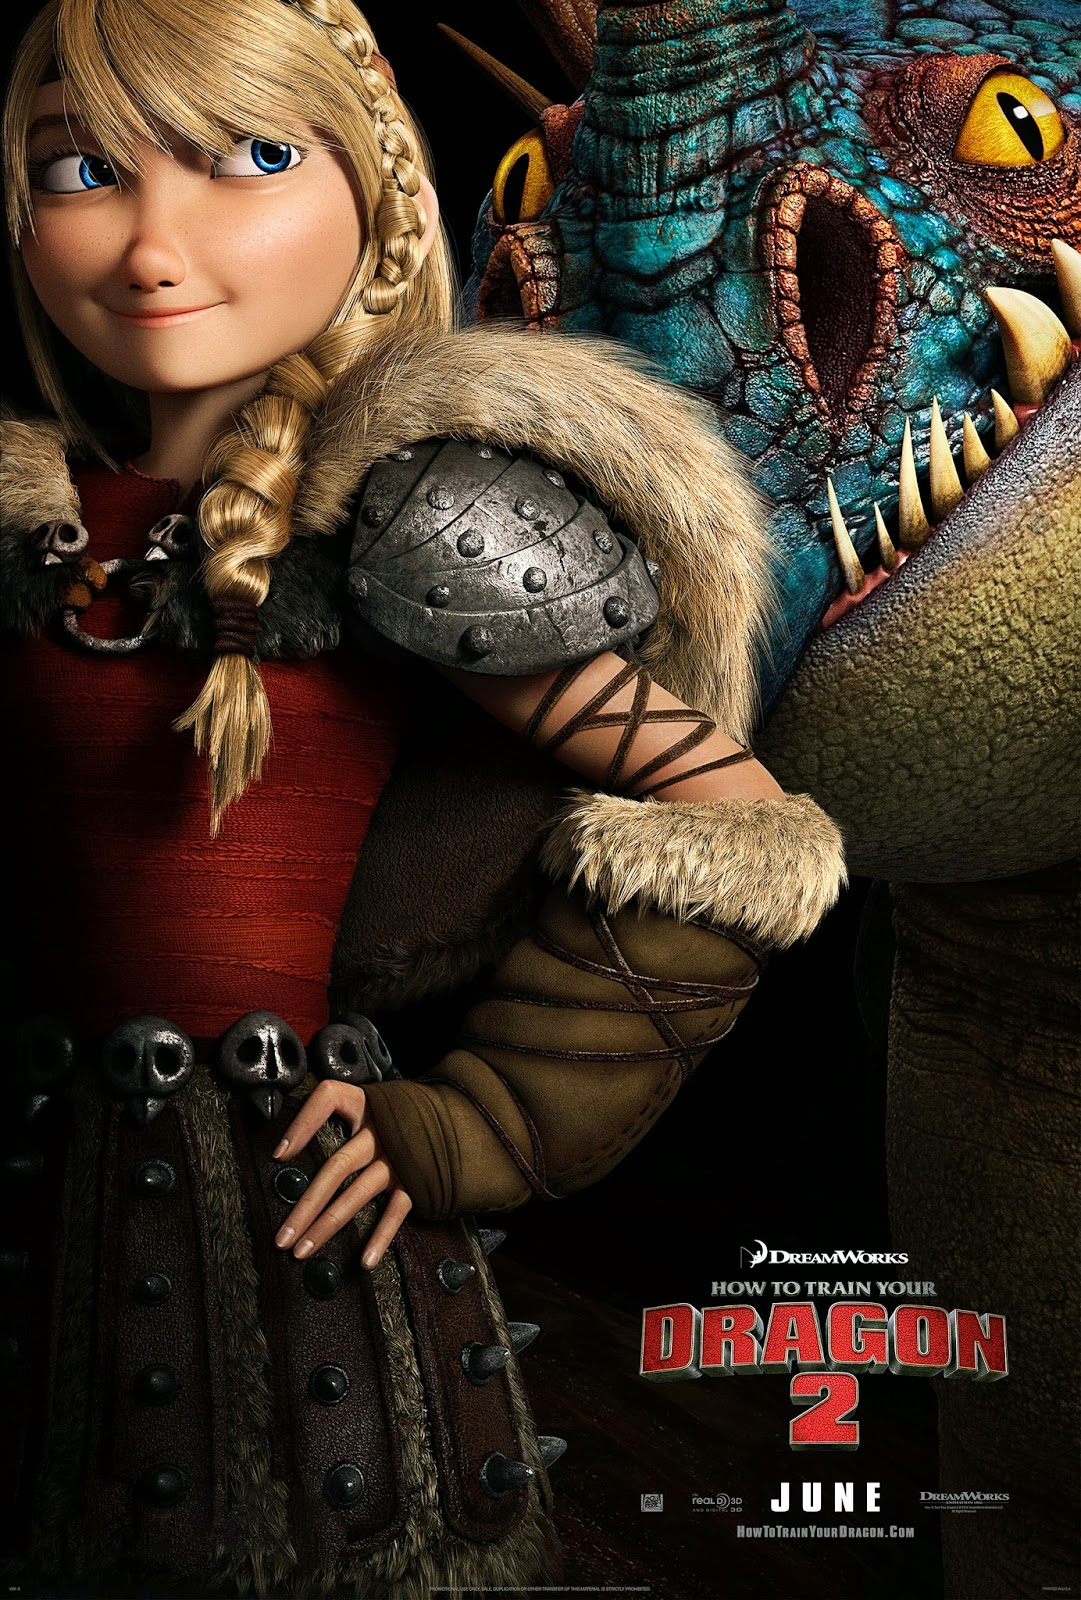 How to Train Your Dragon 11 (Western Animation) - TV Tropes